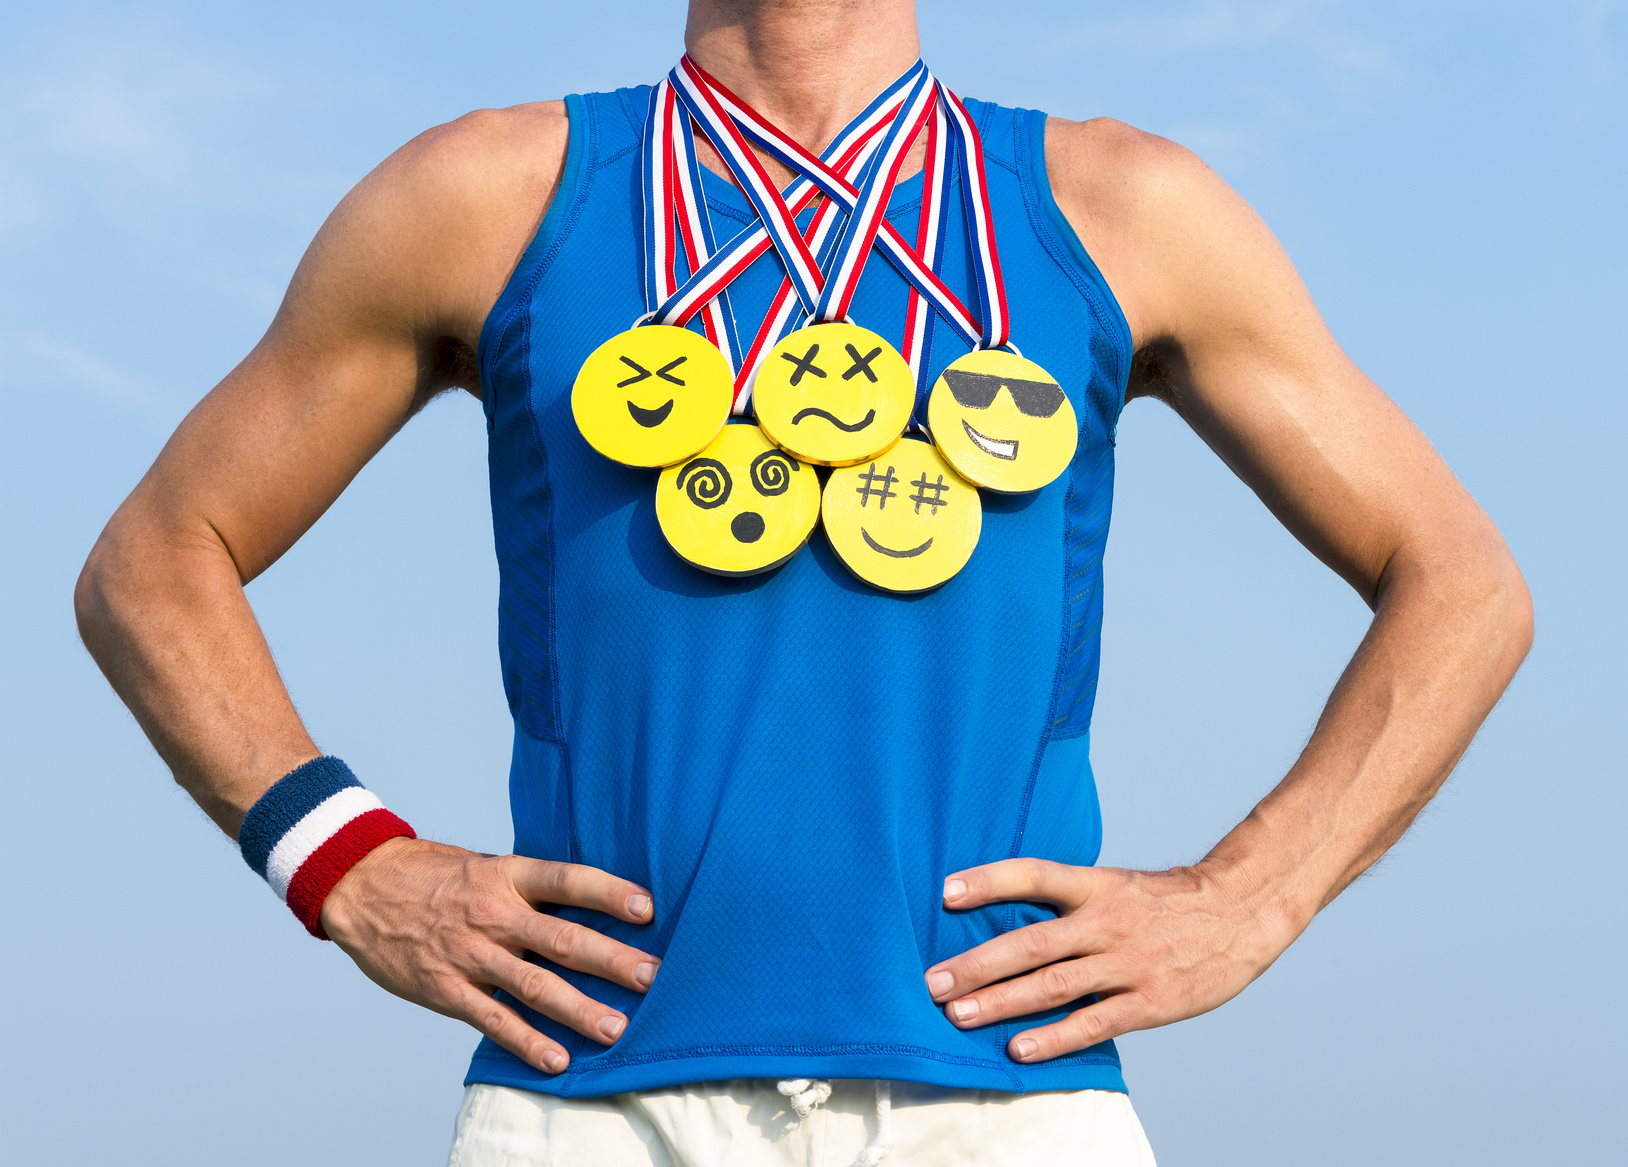 Athlete wearing gold medals with bright yellow emoji faces standing in front of blue sky background